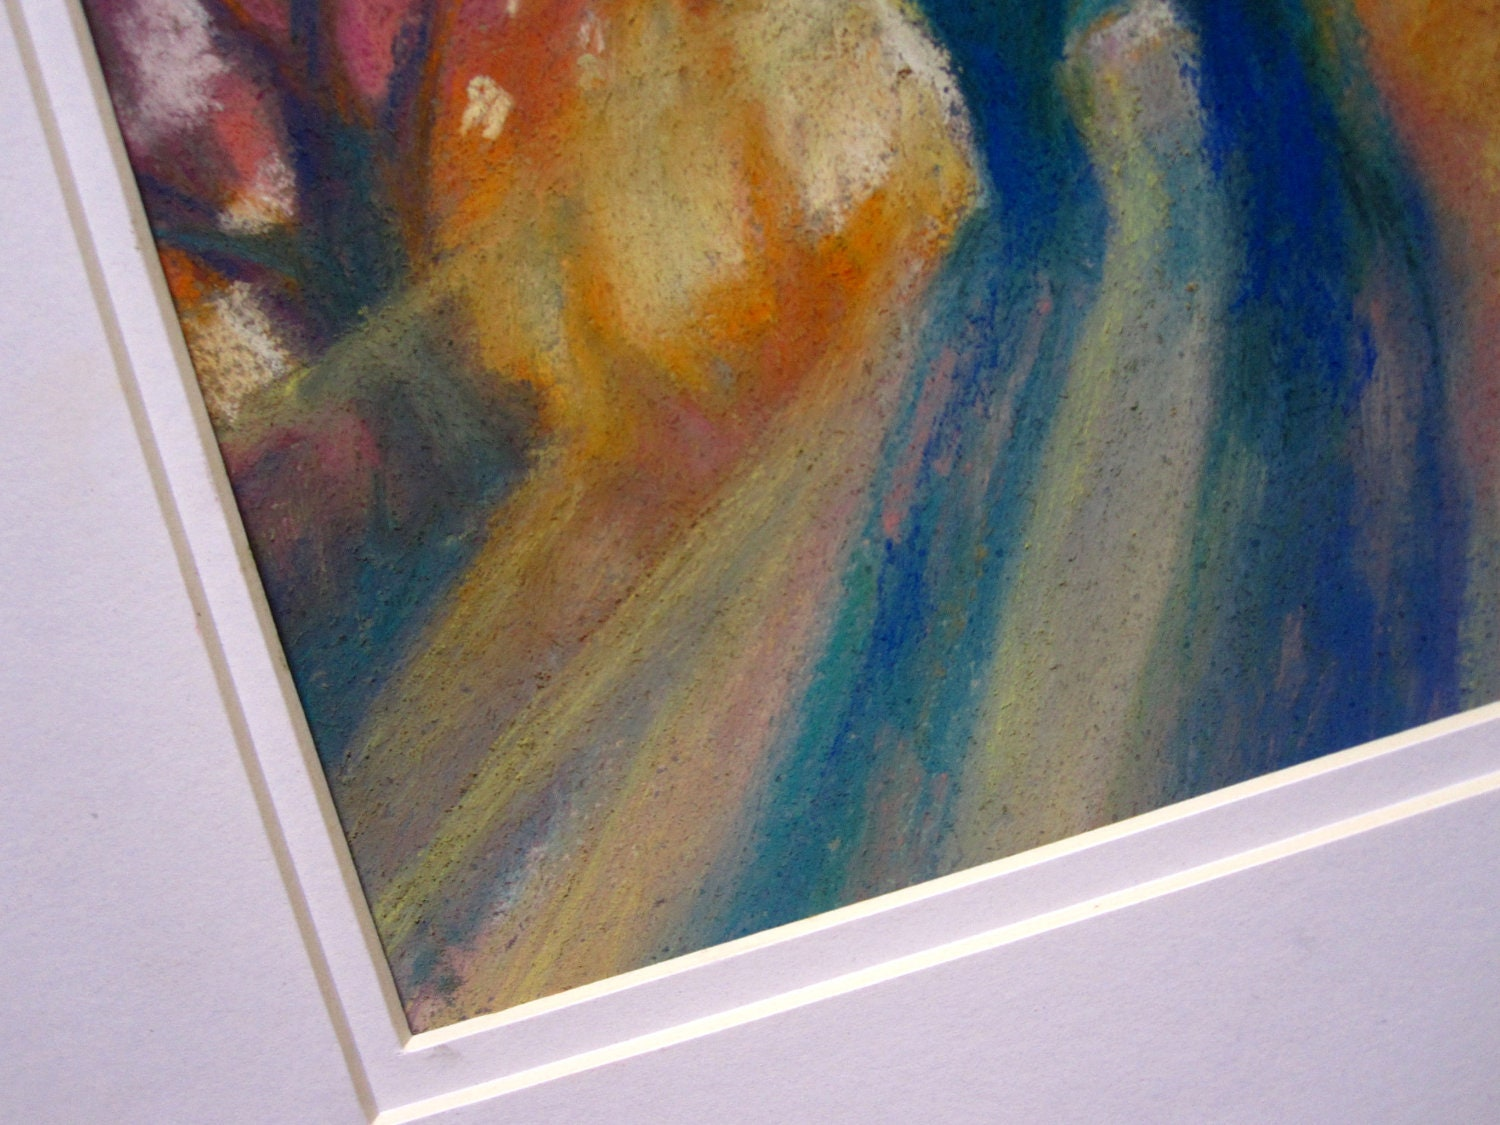 Pastel Drawing Shine Through Original Pastel Painting Matted and Ready To Frame Colourful Home Art